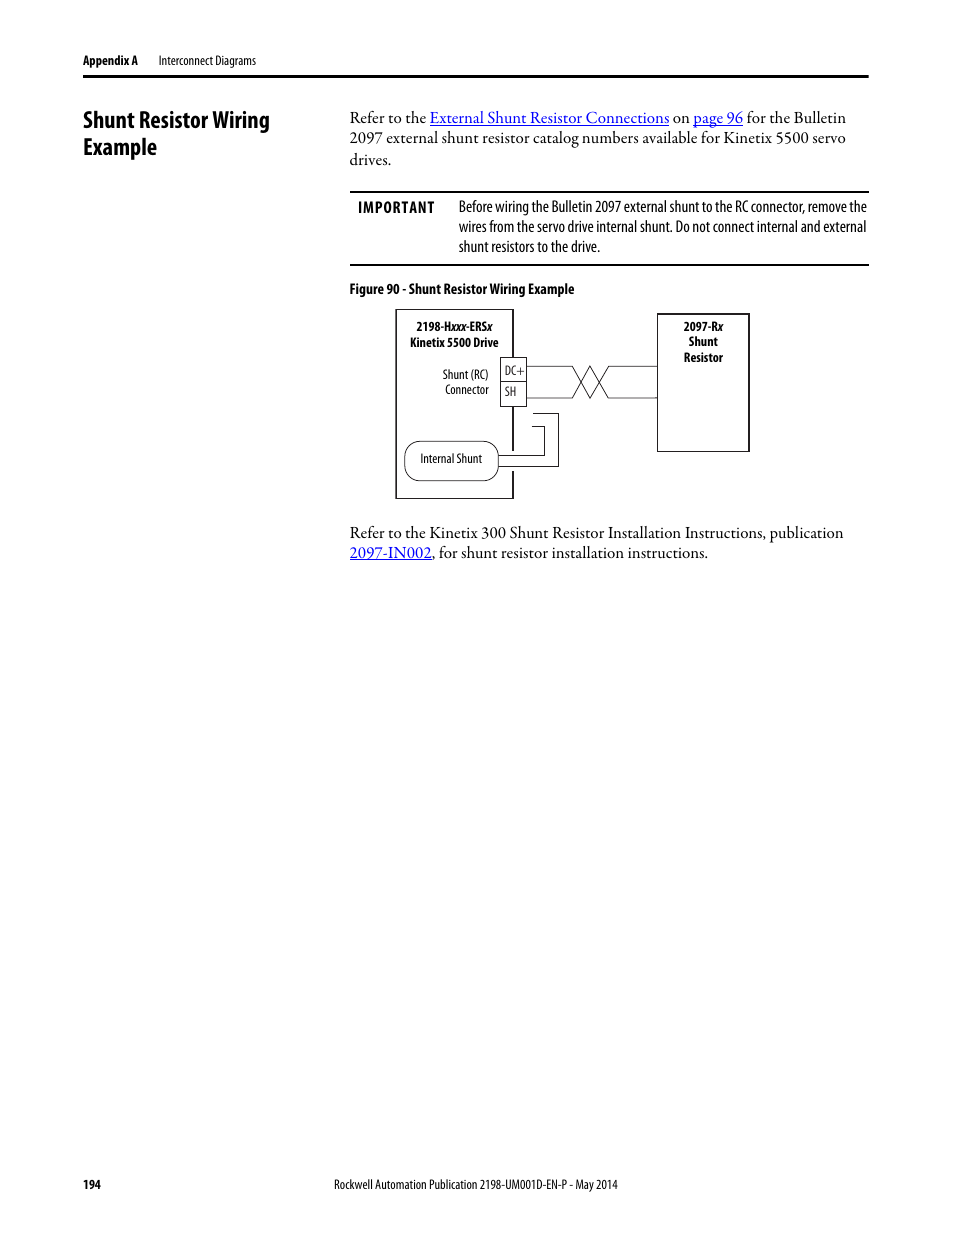 shunt resistor wiring example | rockwell automation 2198-hxxx kinetix 5500  servo drives user manual user manual | page 194 / 244